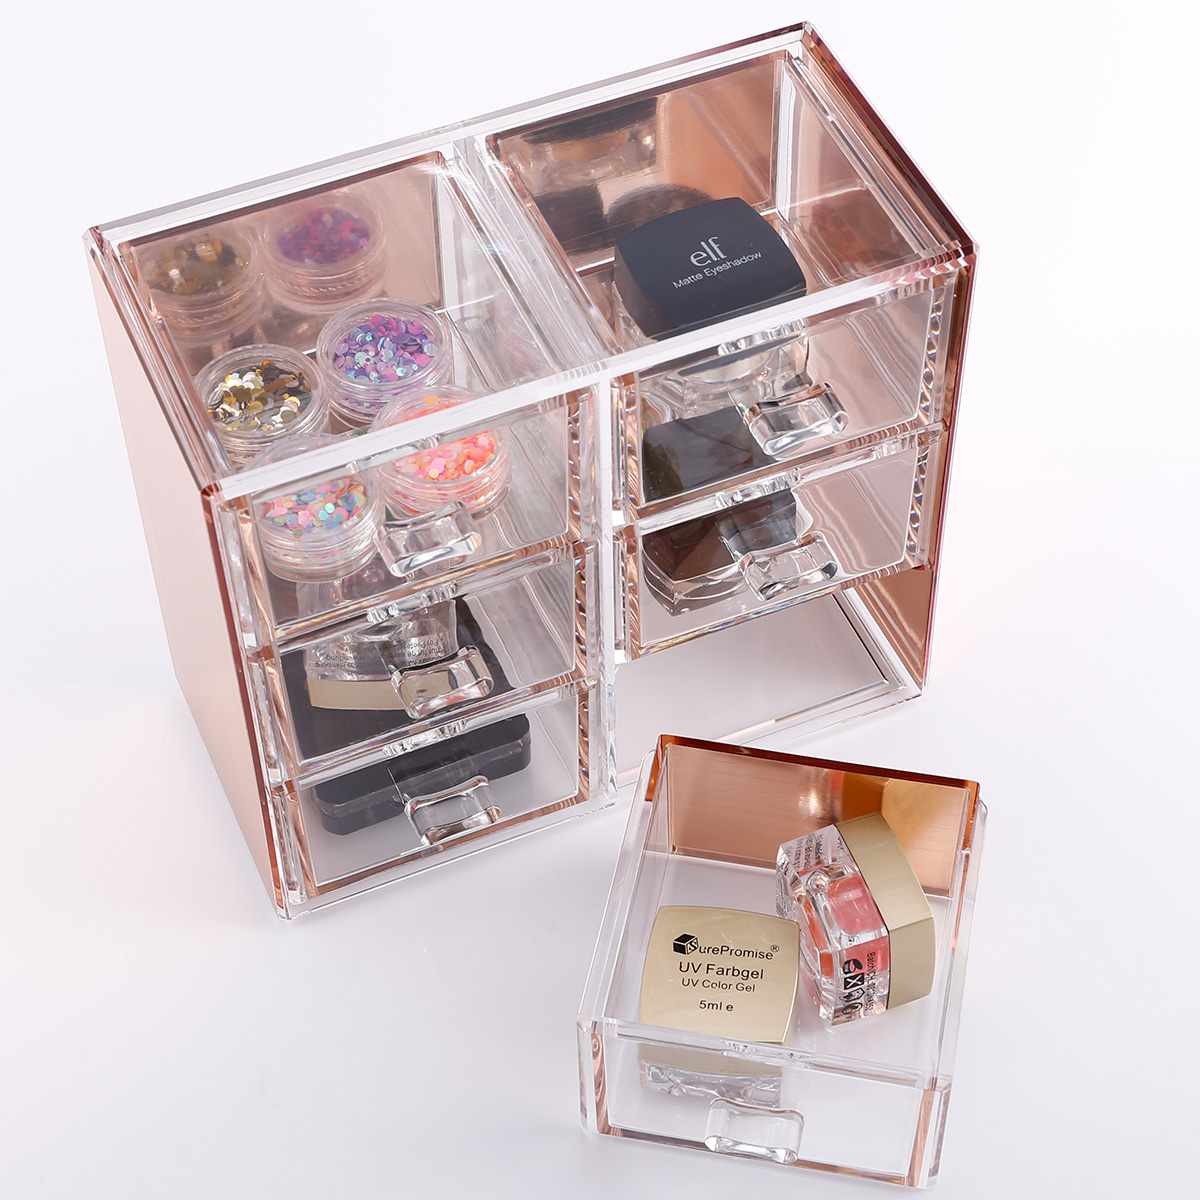 rosegold kosmetik organizer make up acryl aufbewahrung kosmetikbox auswahl ebay. Black Bedroom Furniture Sets. Home Design Ideas